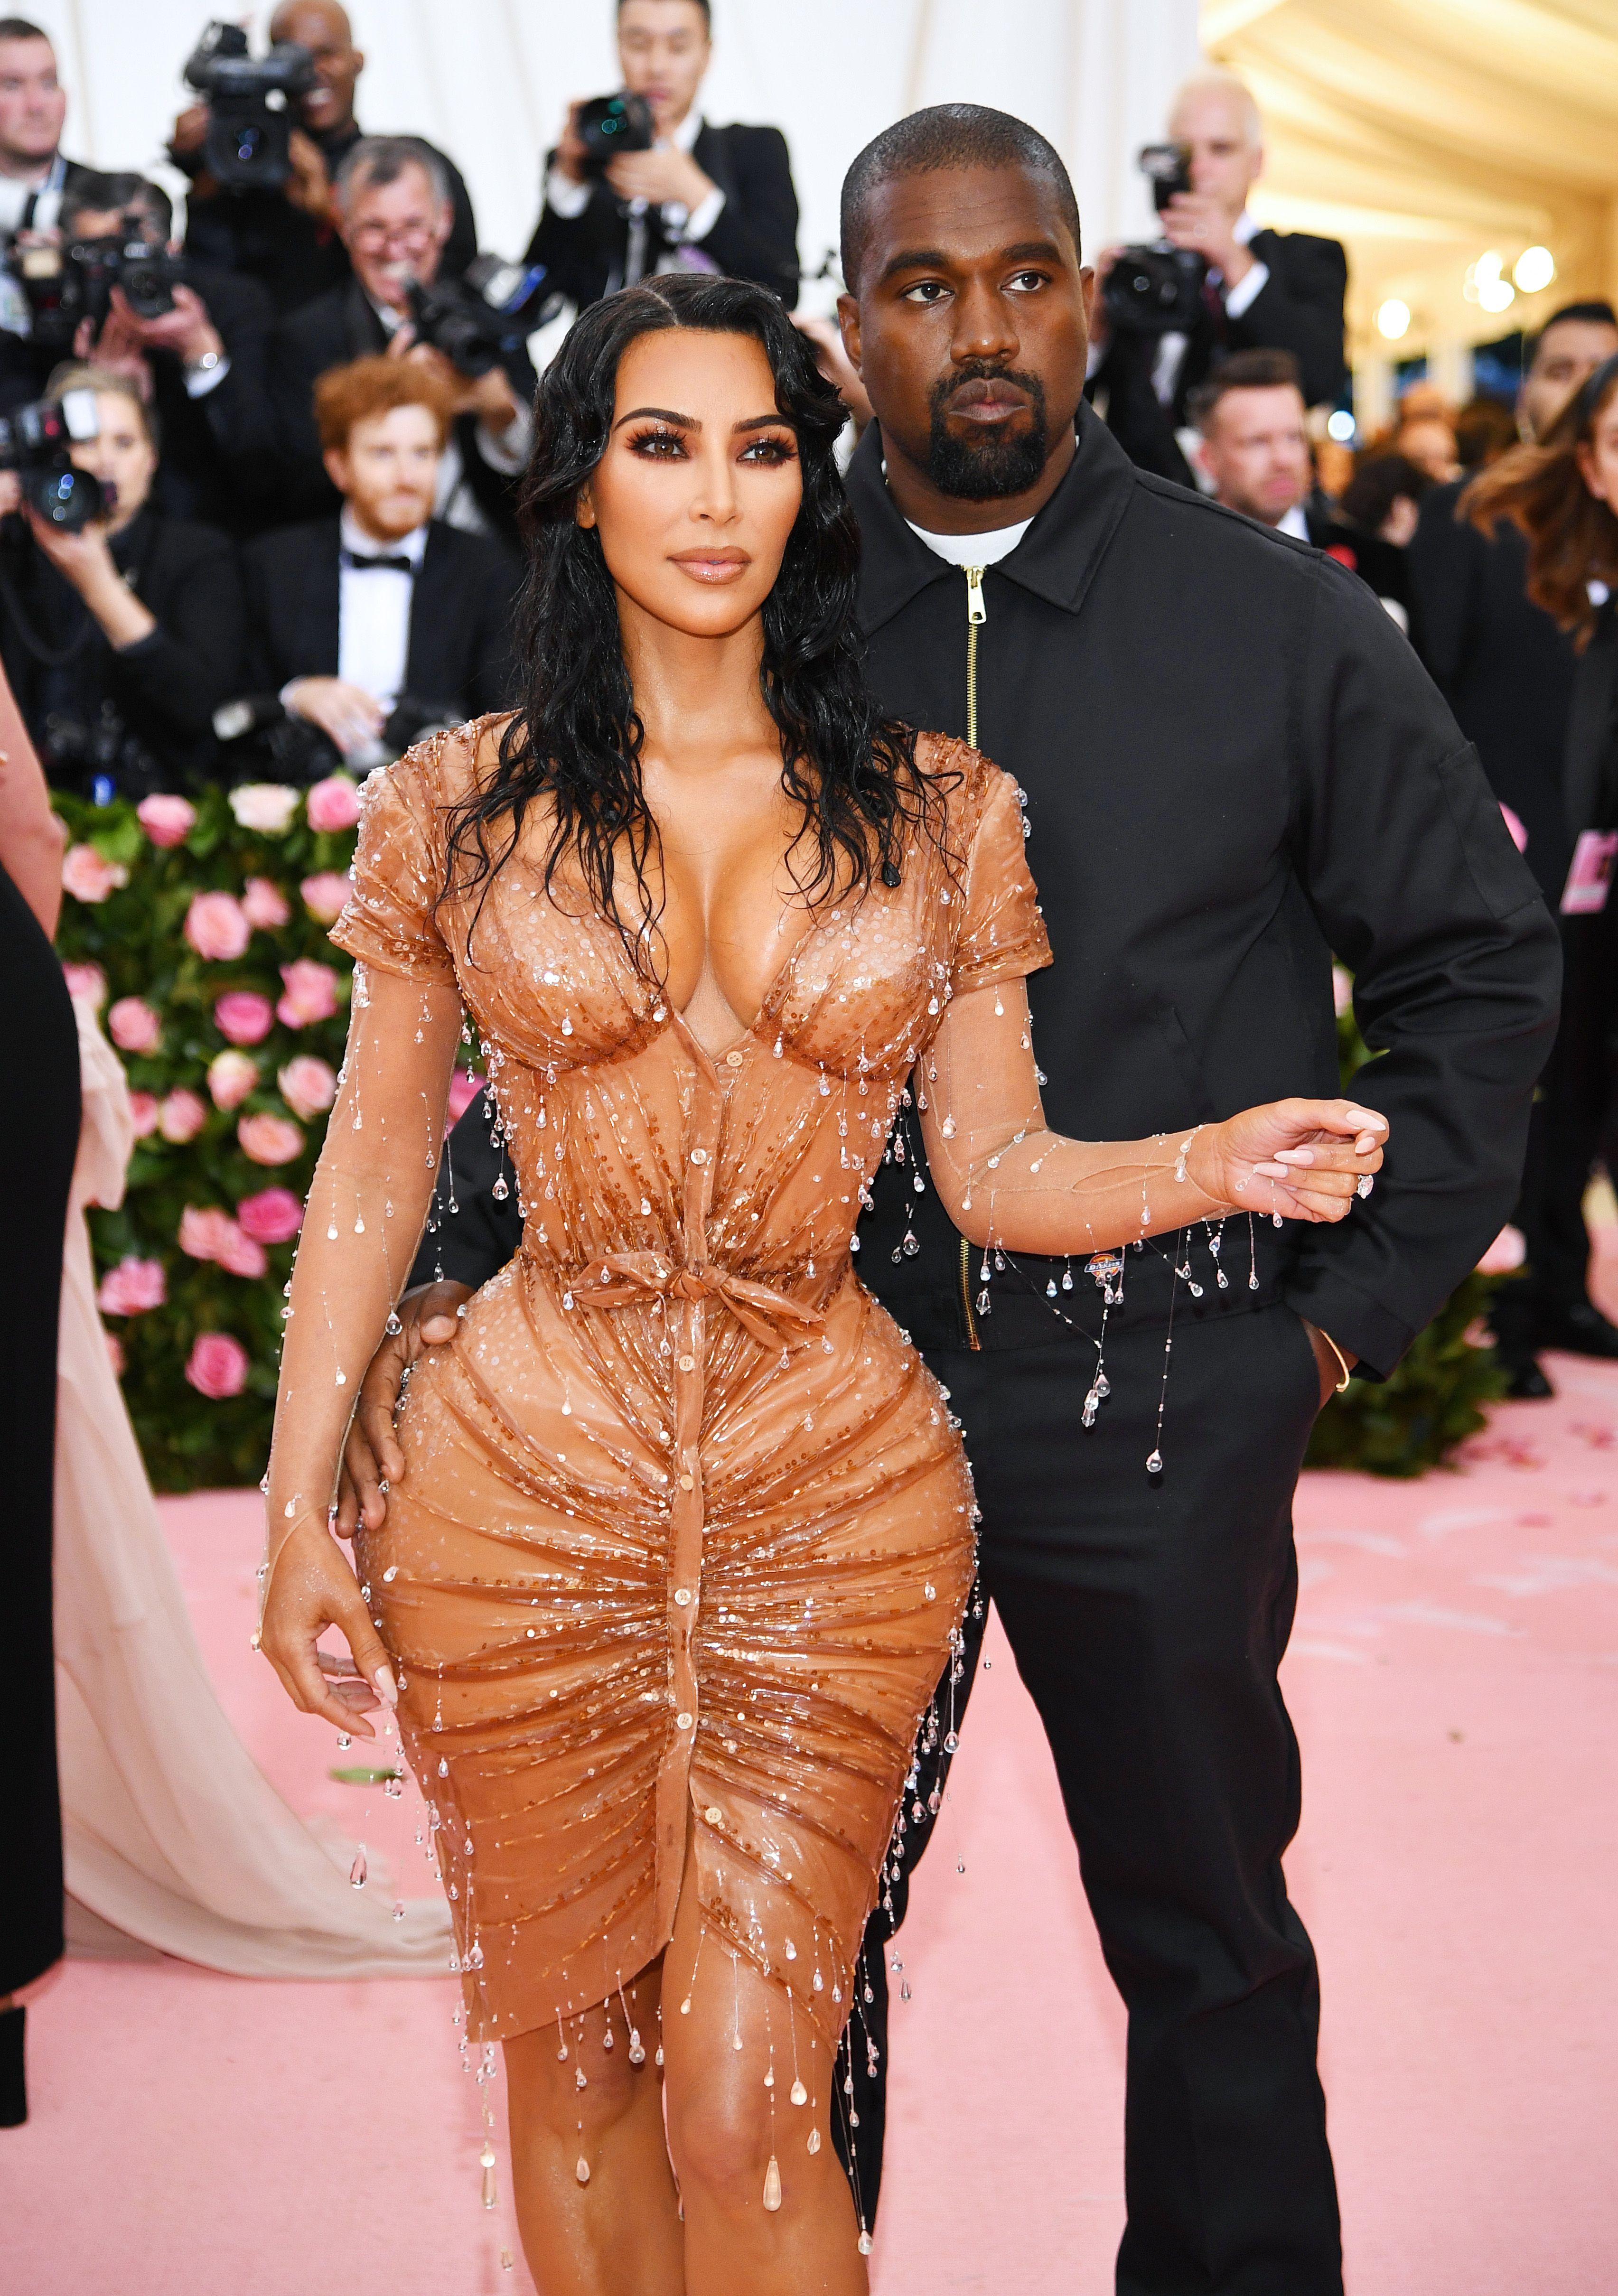 """Kanye West Told Kim Kardashian He Didn't Like Her Met Gala Look Because it Was """"Too Sexy"""""""